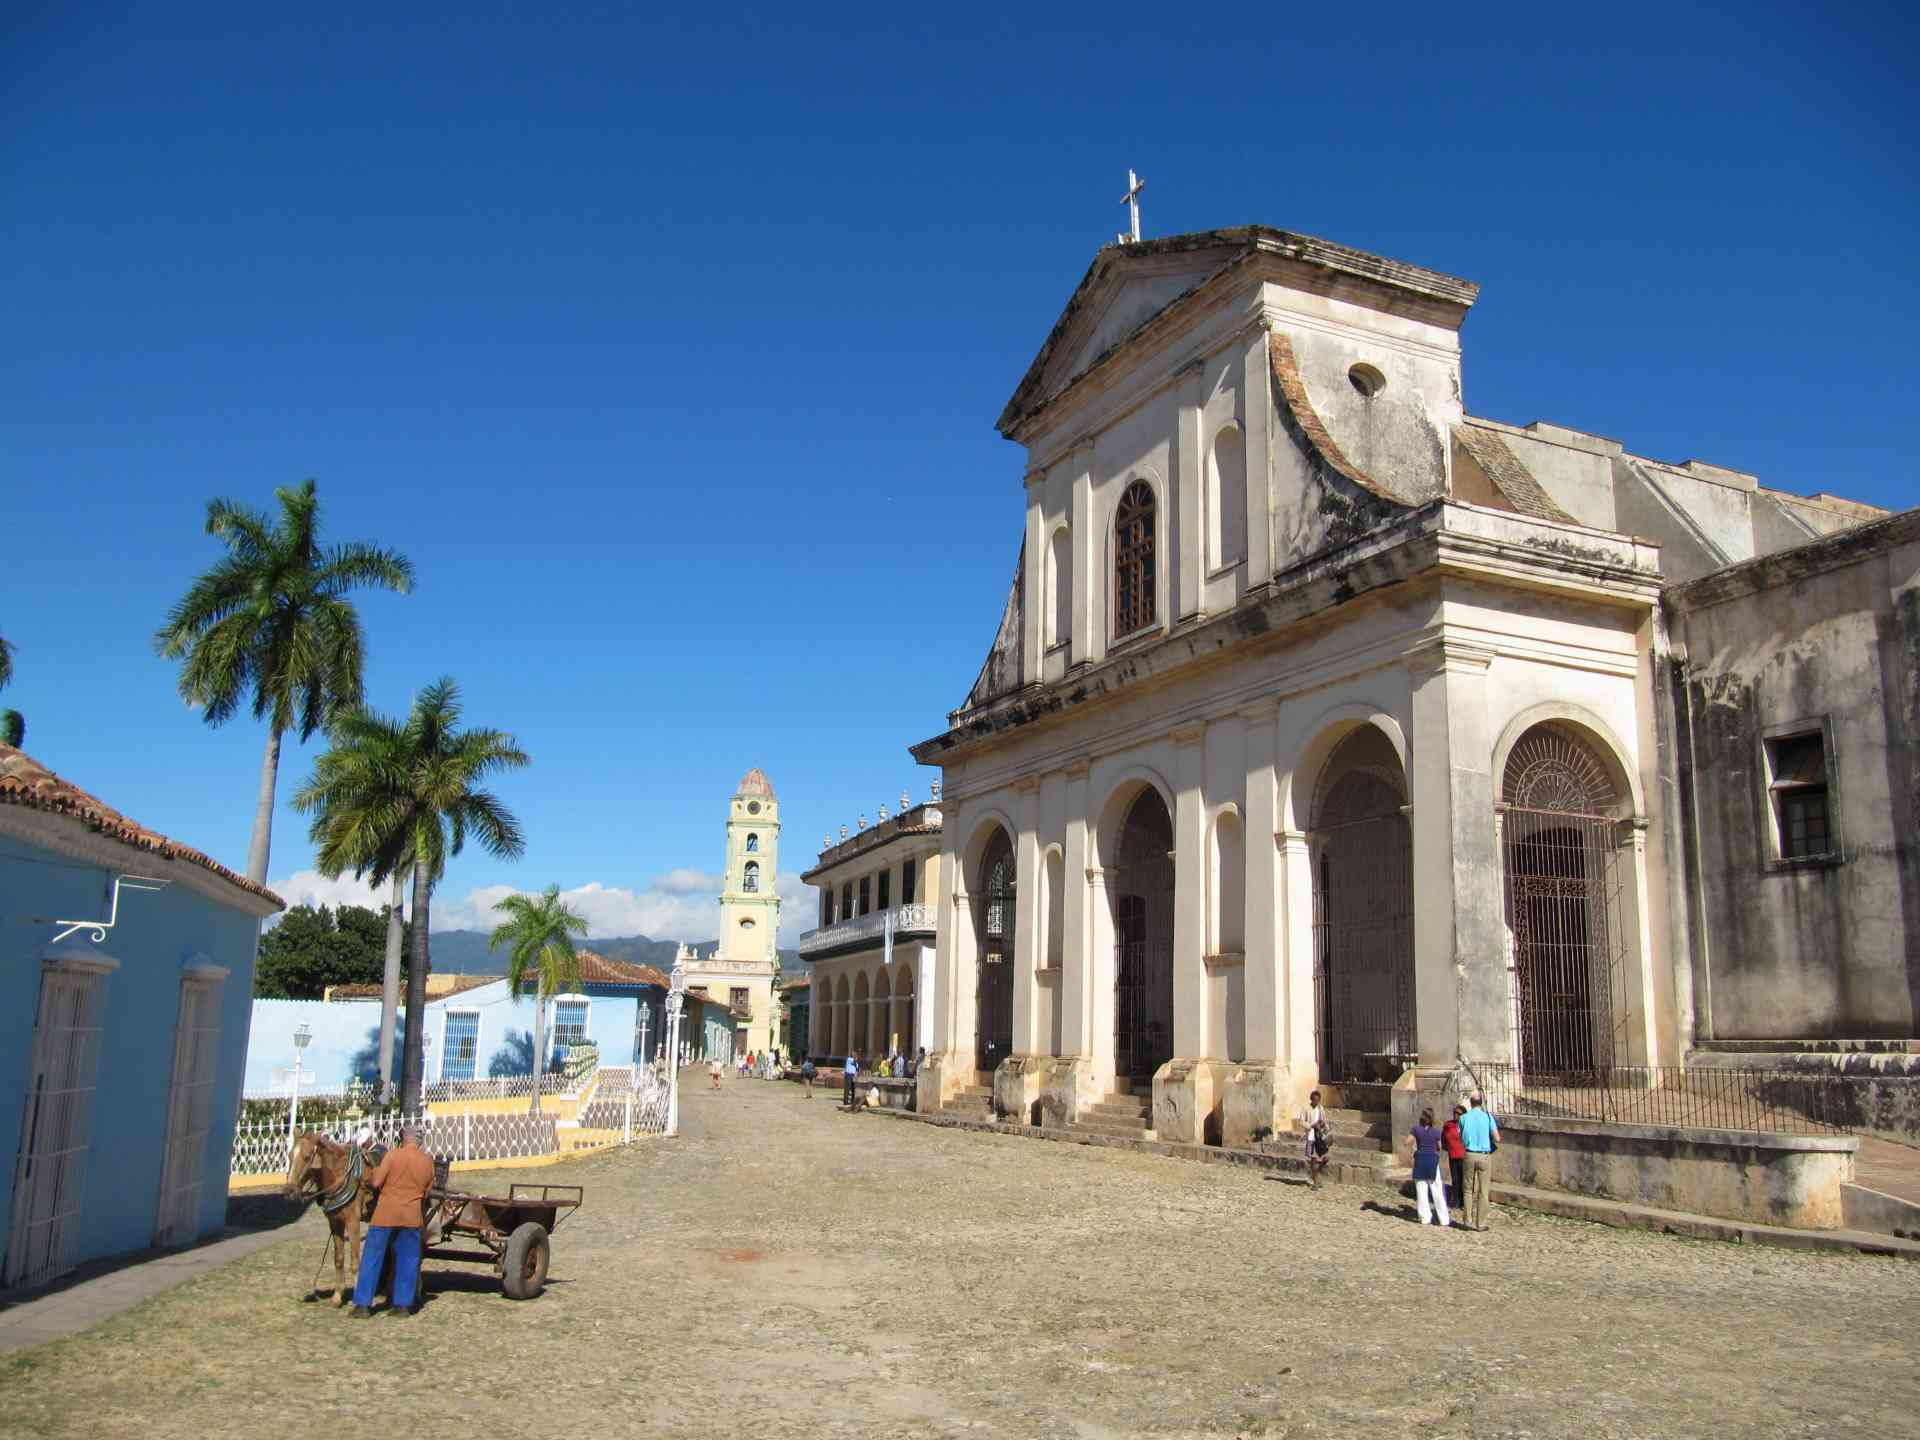 Church of Holy Trinity, Trinidad, Cuba by Frank Bunnik